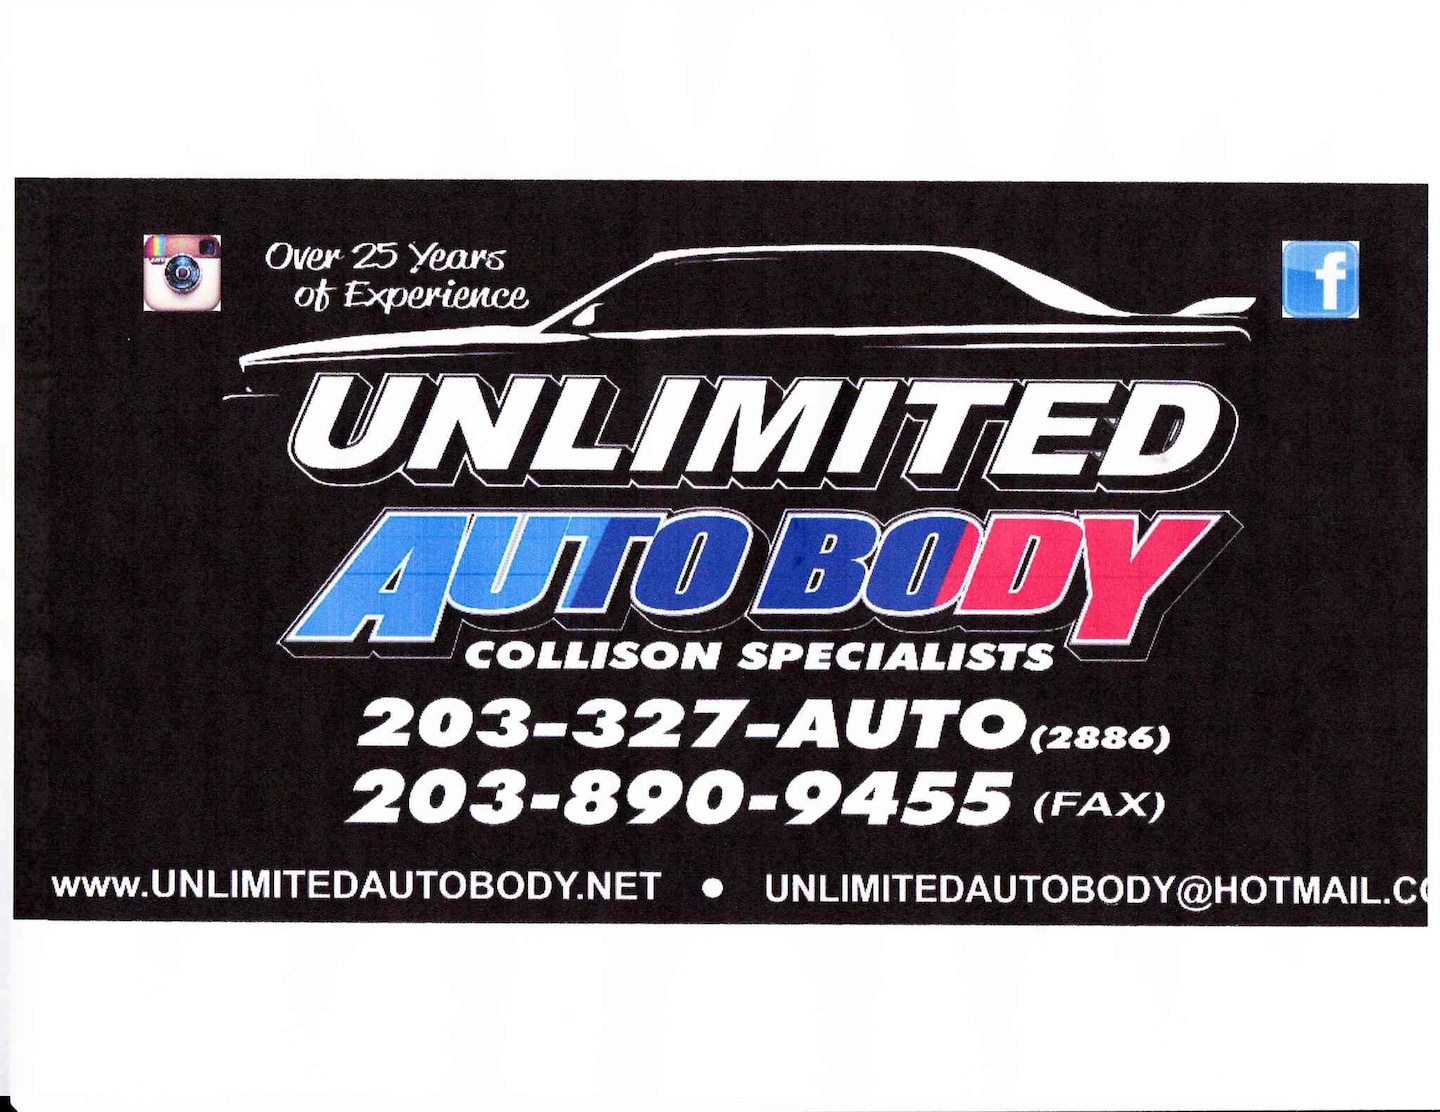 Unlimited Auto Body & Collision Specialists